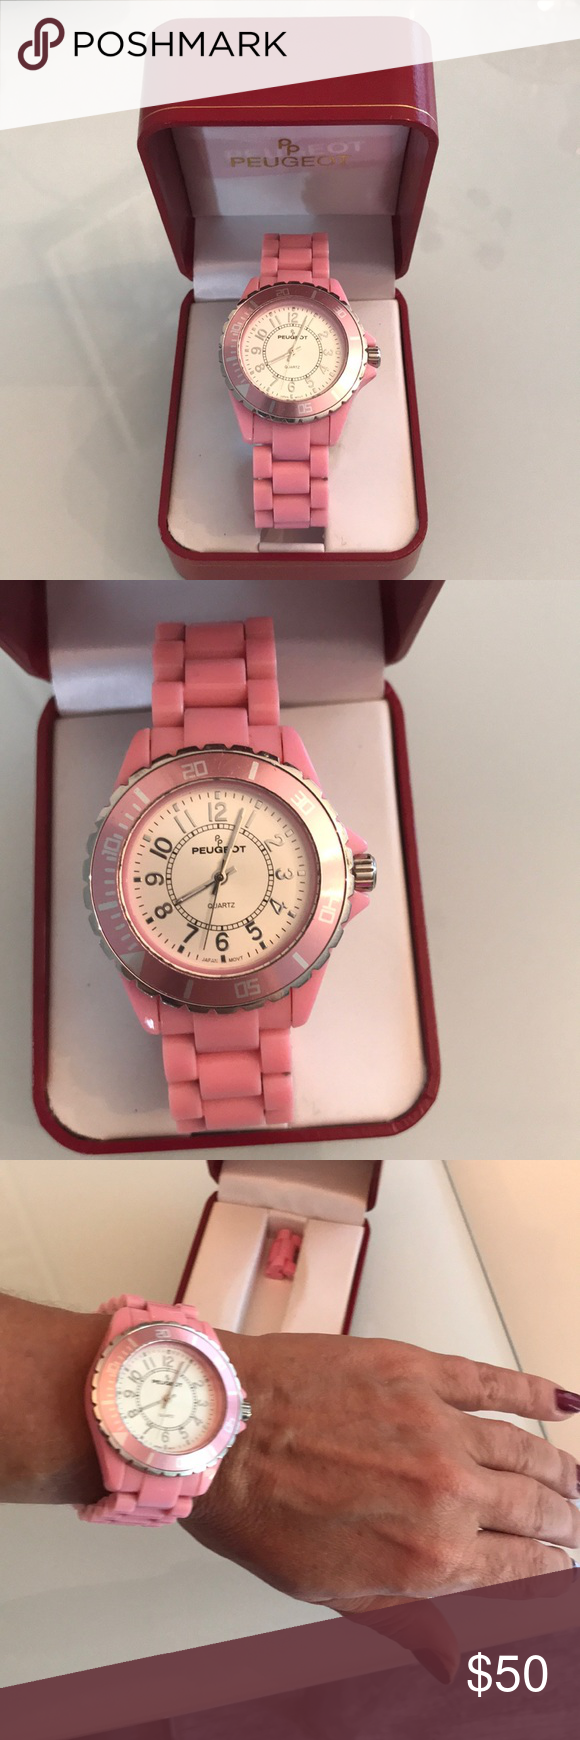 Peugeot Watch Pink Plastic Bracelet Peugeot Watch Like New Condition With The Box Needs A Battery Replace Only Peugeot Ac Pink Plastic Watches Things To Sell